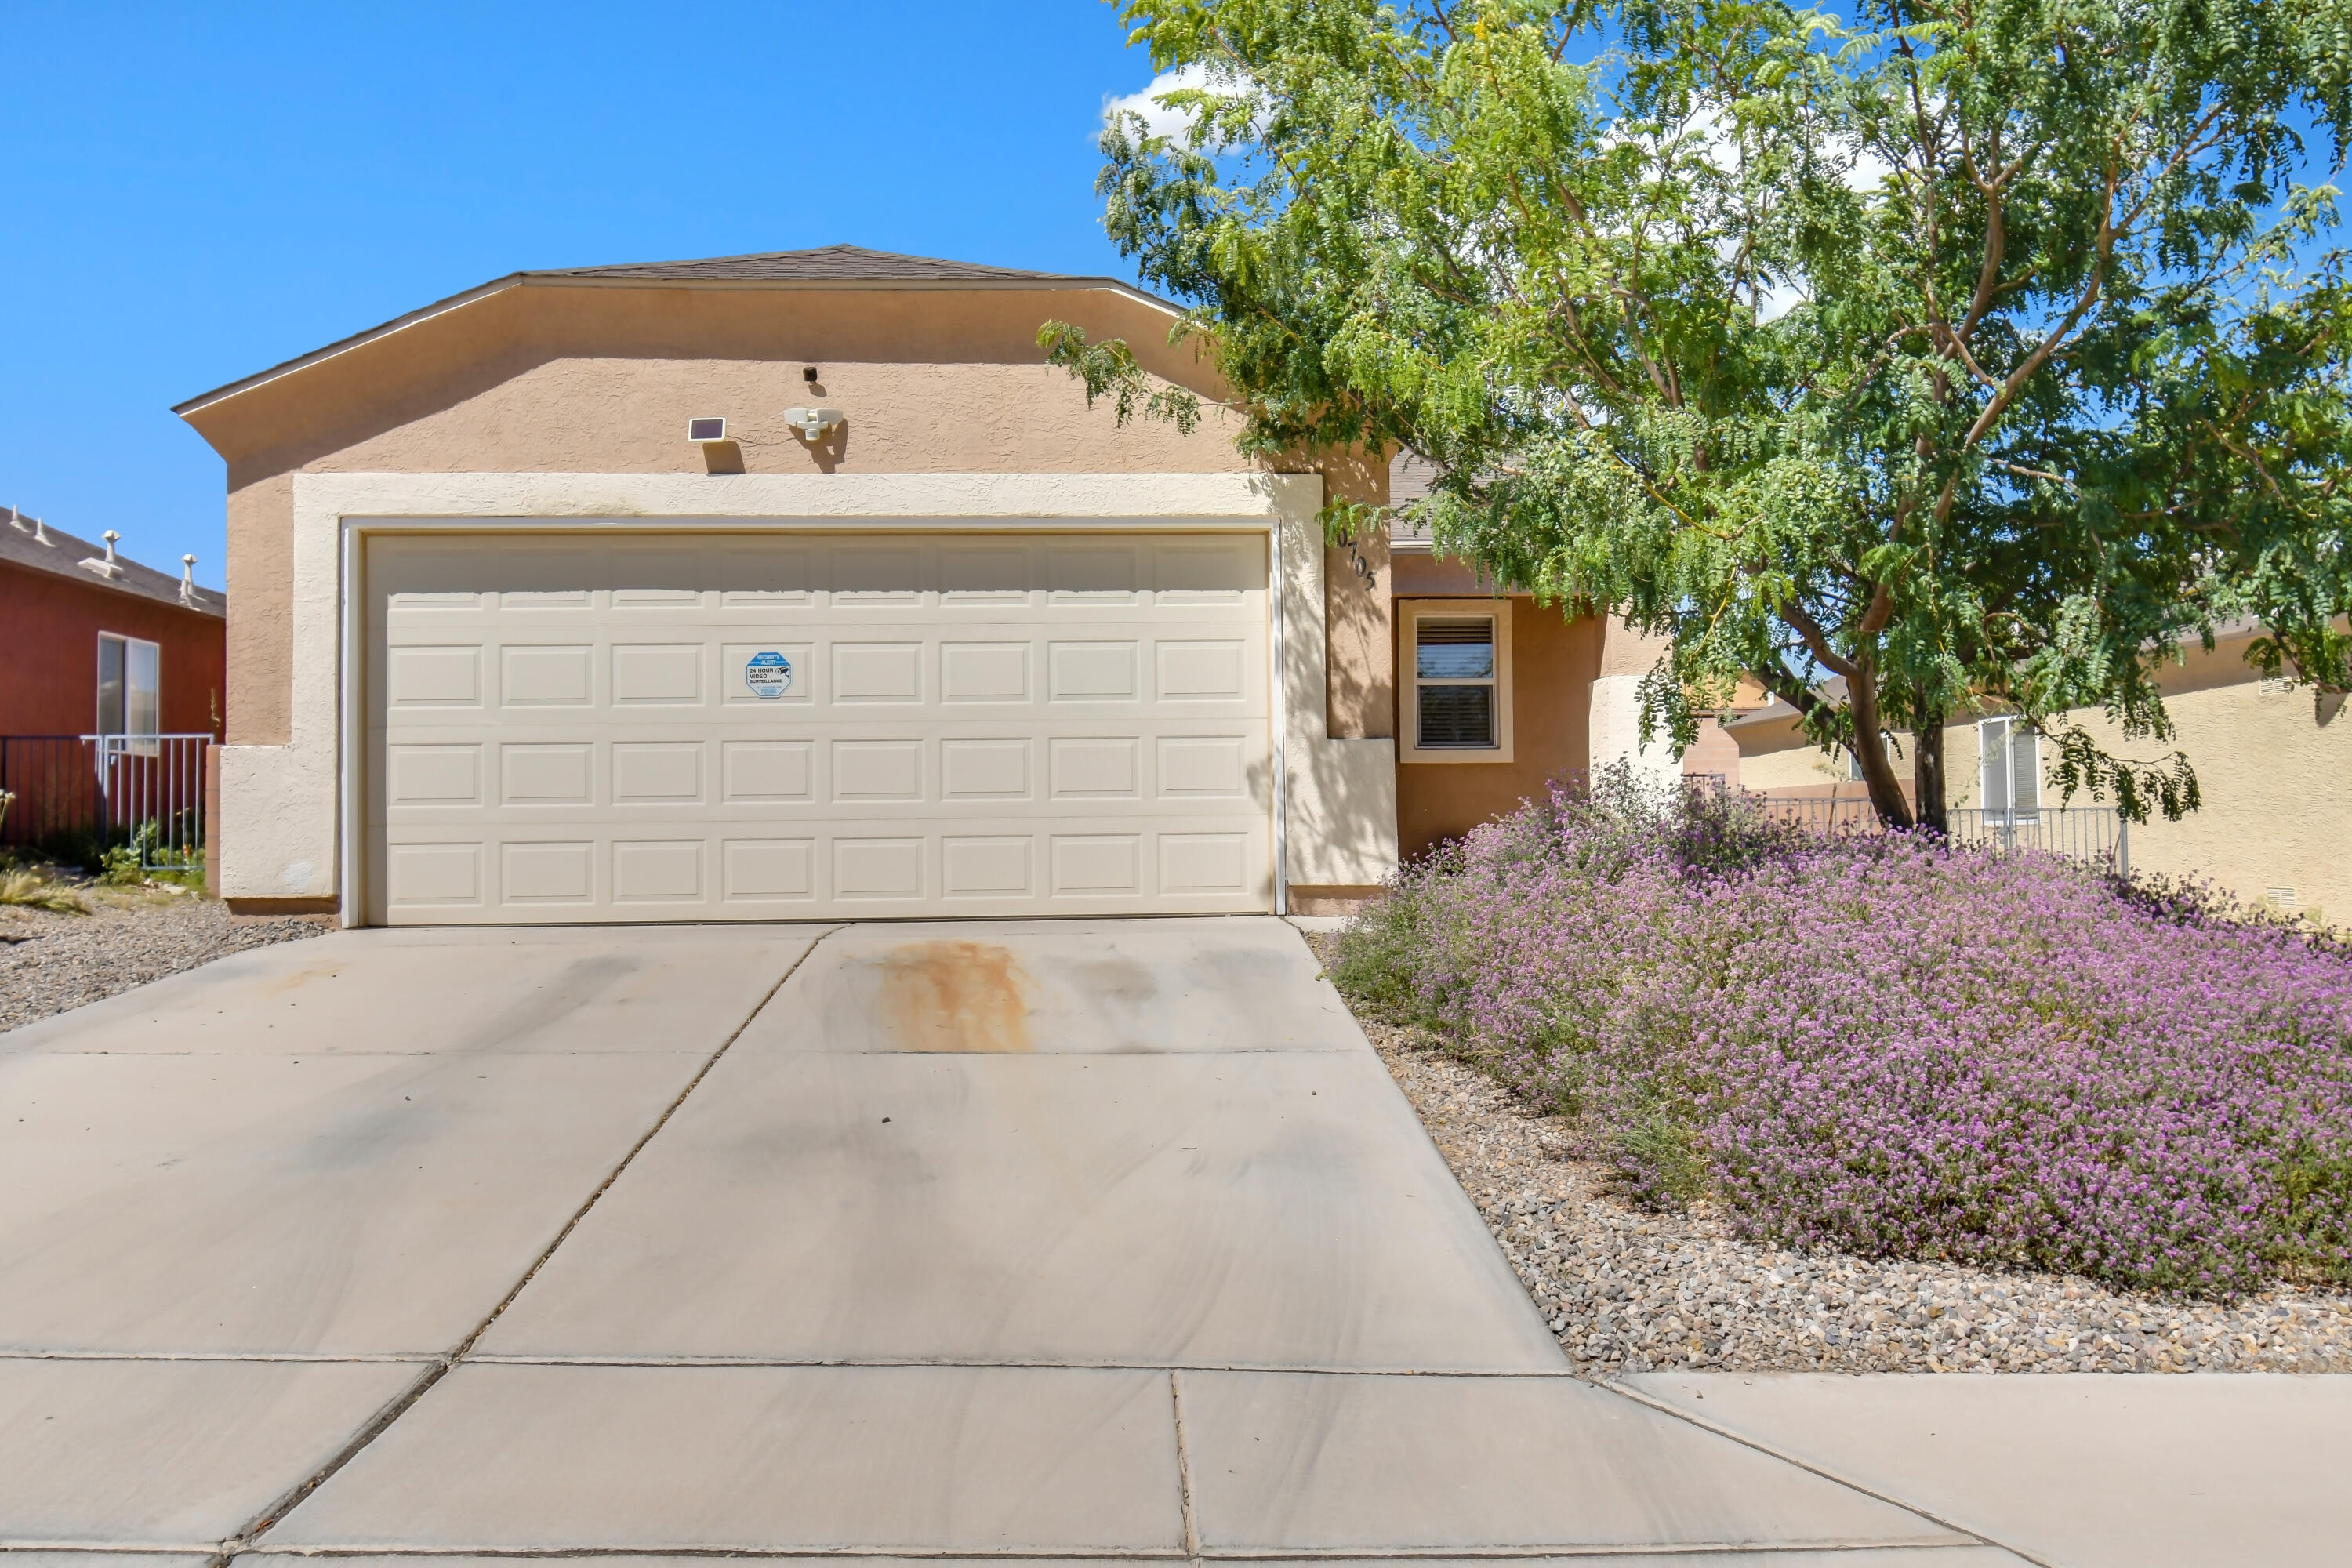 Welcome home to this well-maintained single-story home with an open floor plan with a large living area that opens to the kitchen, a spacious owner's suite and bath, and nice-sized secondary rooms. The backyard is nicely landscaped and is perfect for entertaining.